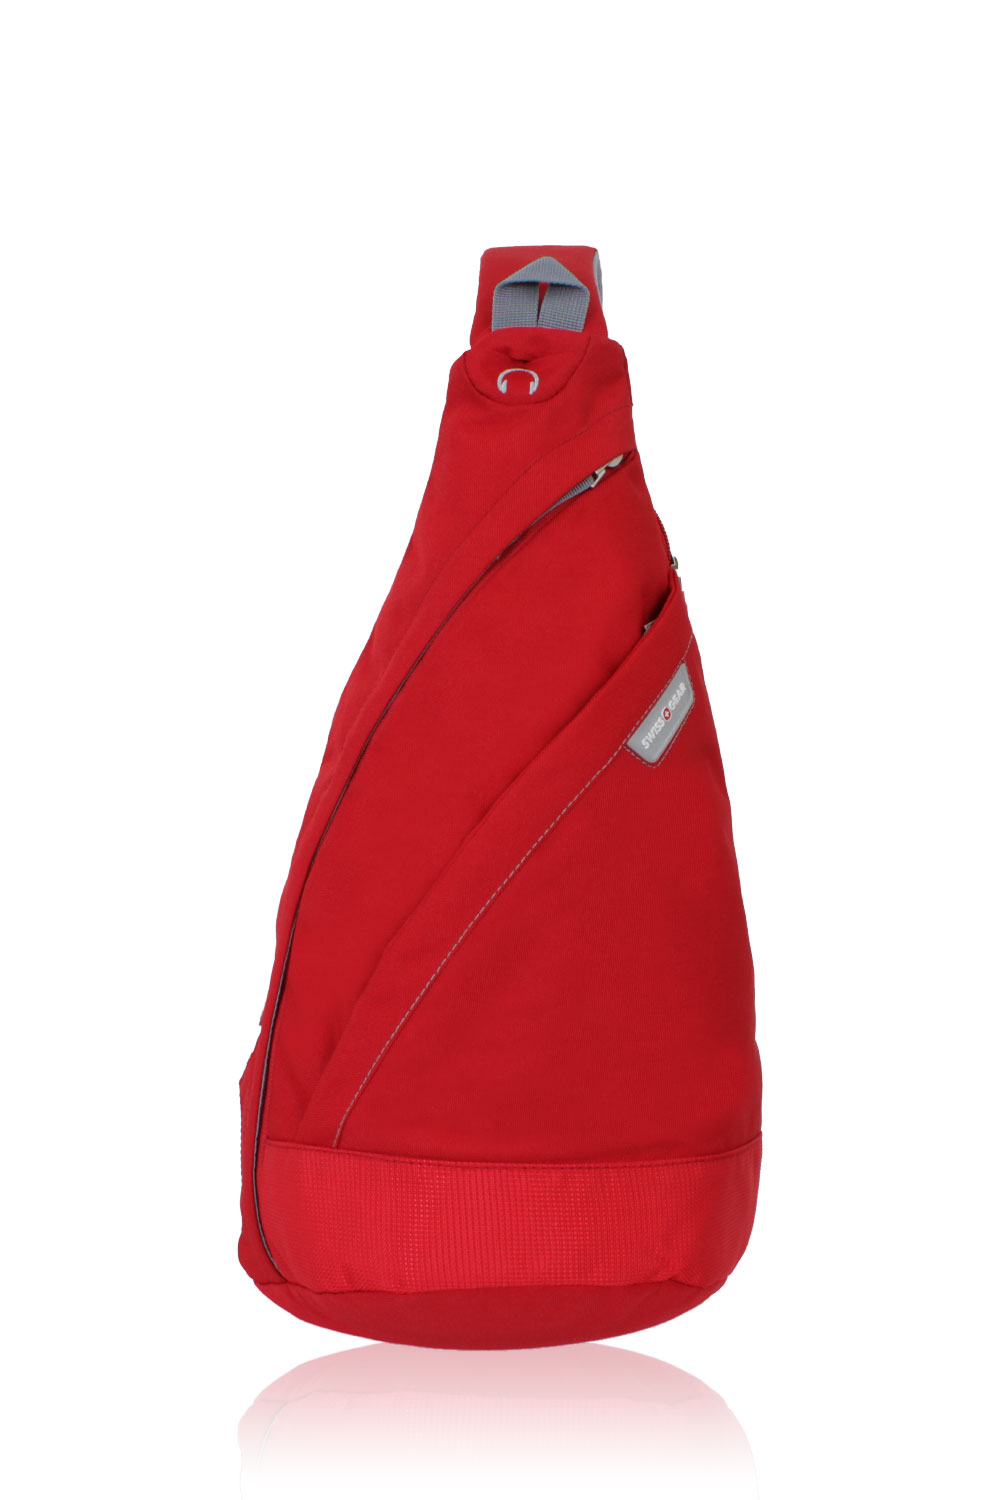 SWISSGEAR Triangle Sling Bag - Red